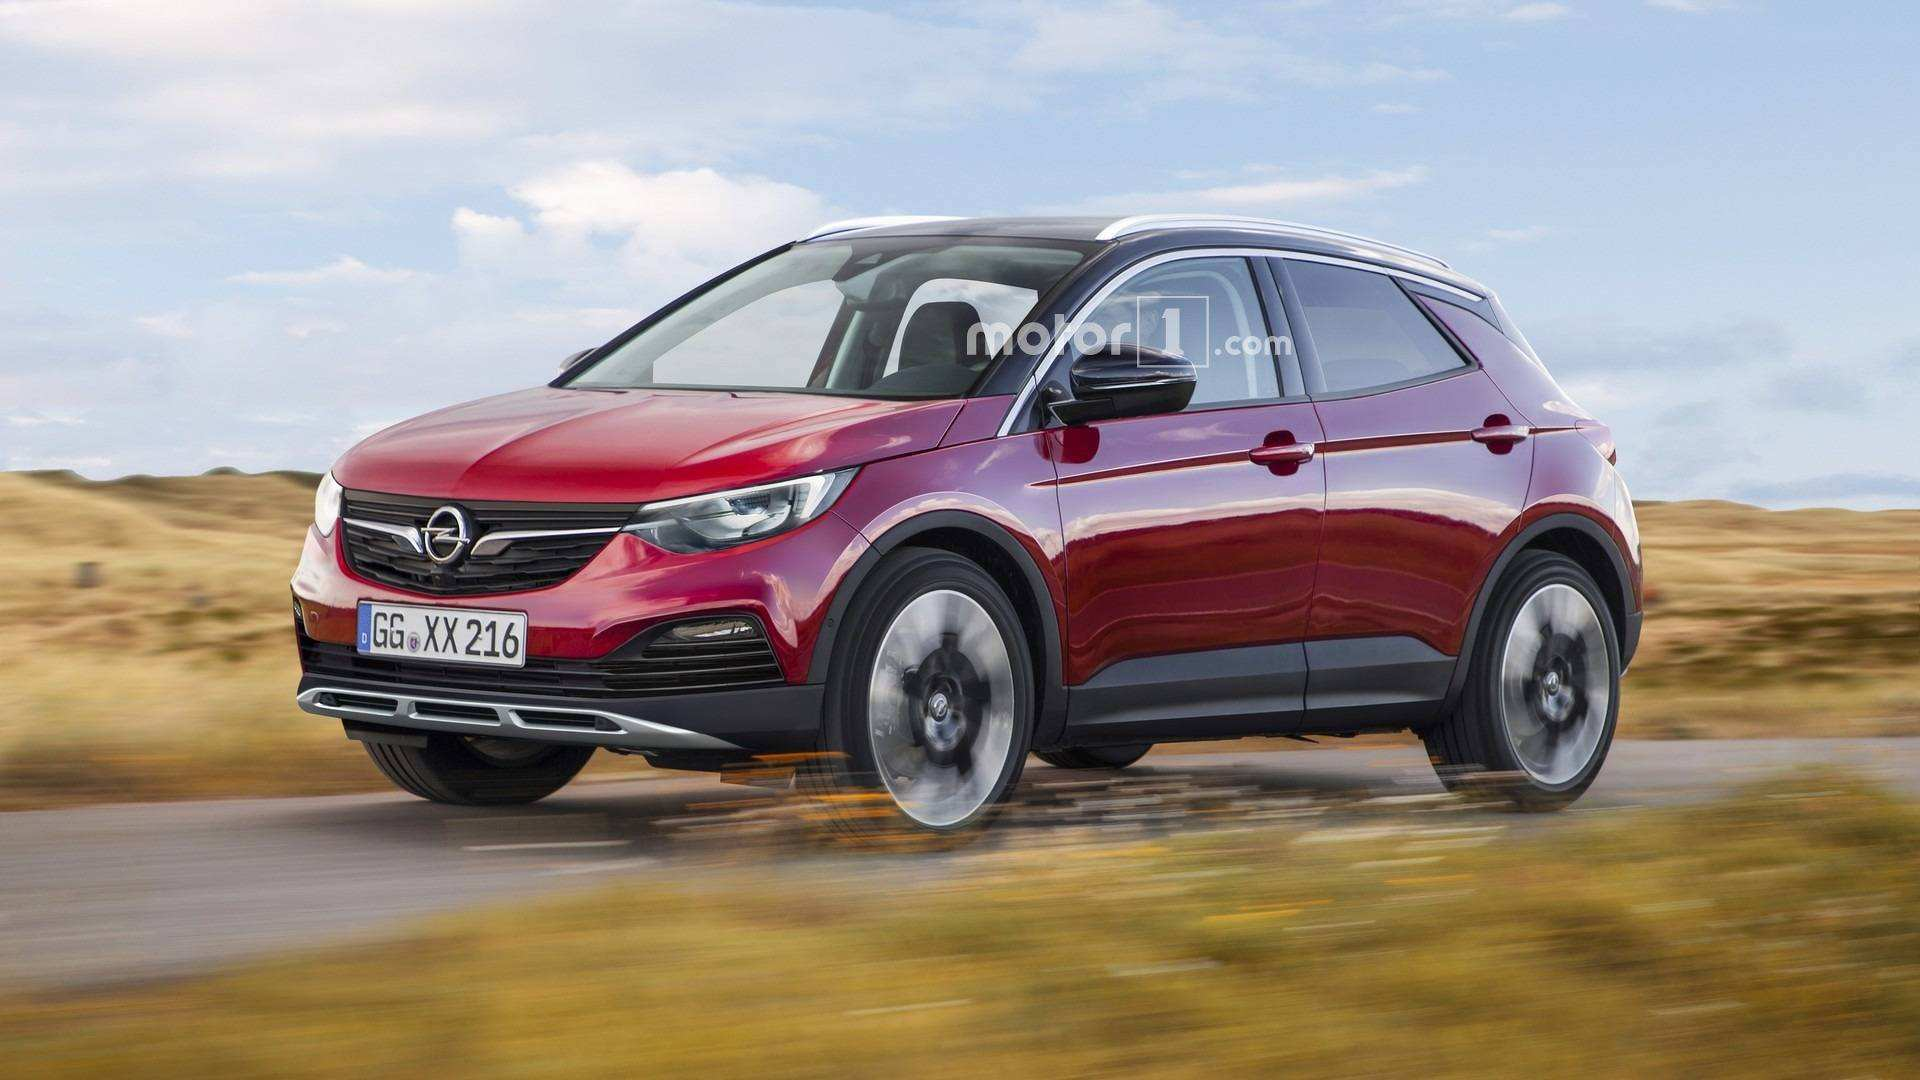 68 All New Suv Opel 2020 Specs with Suv Opel 2020